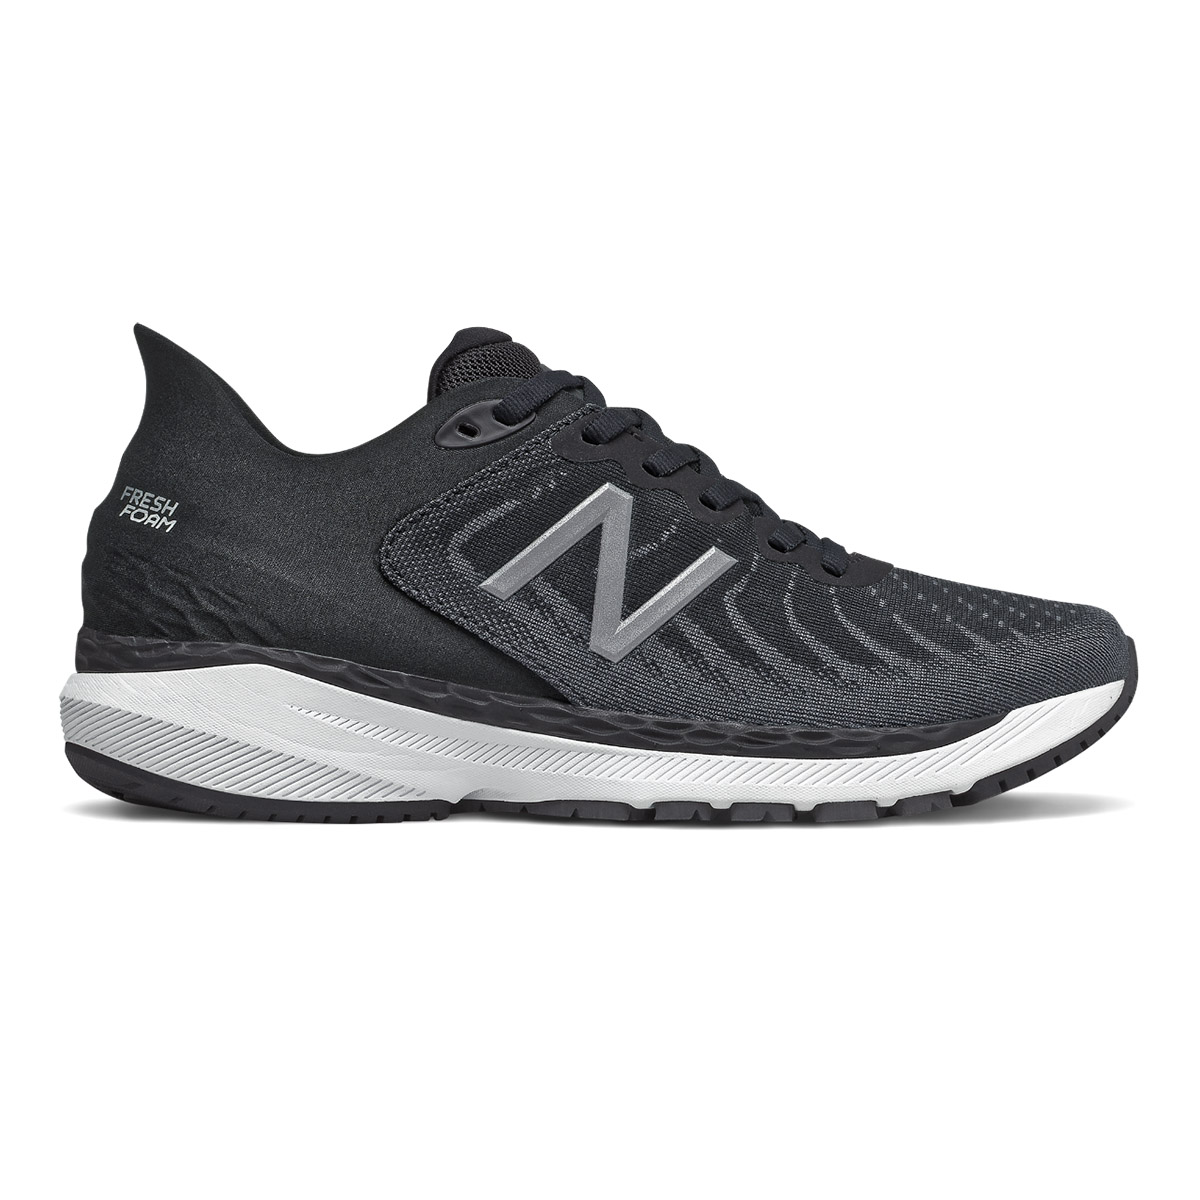 New Balance 860 V11 herre (bred model)